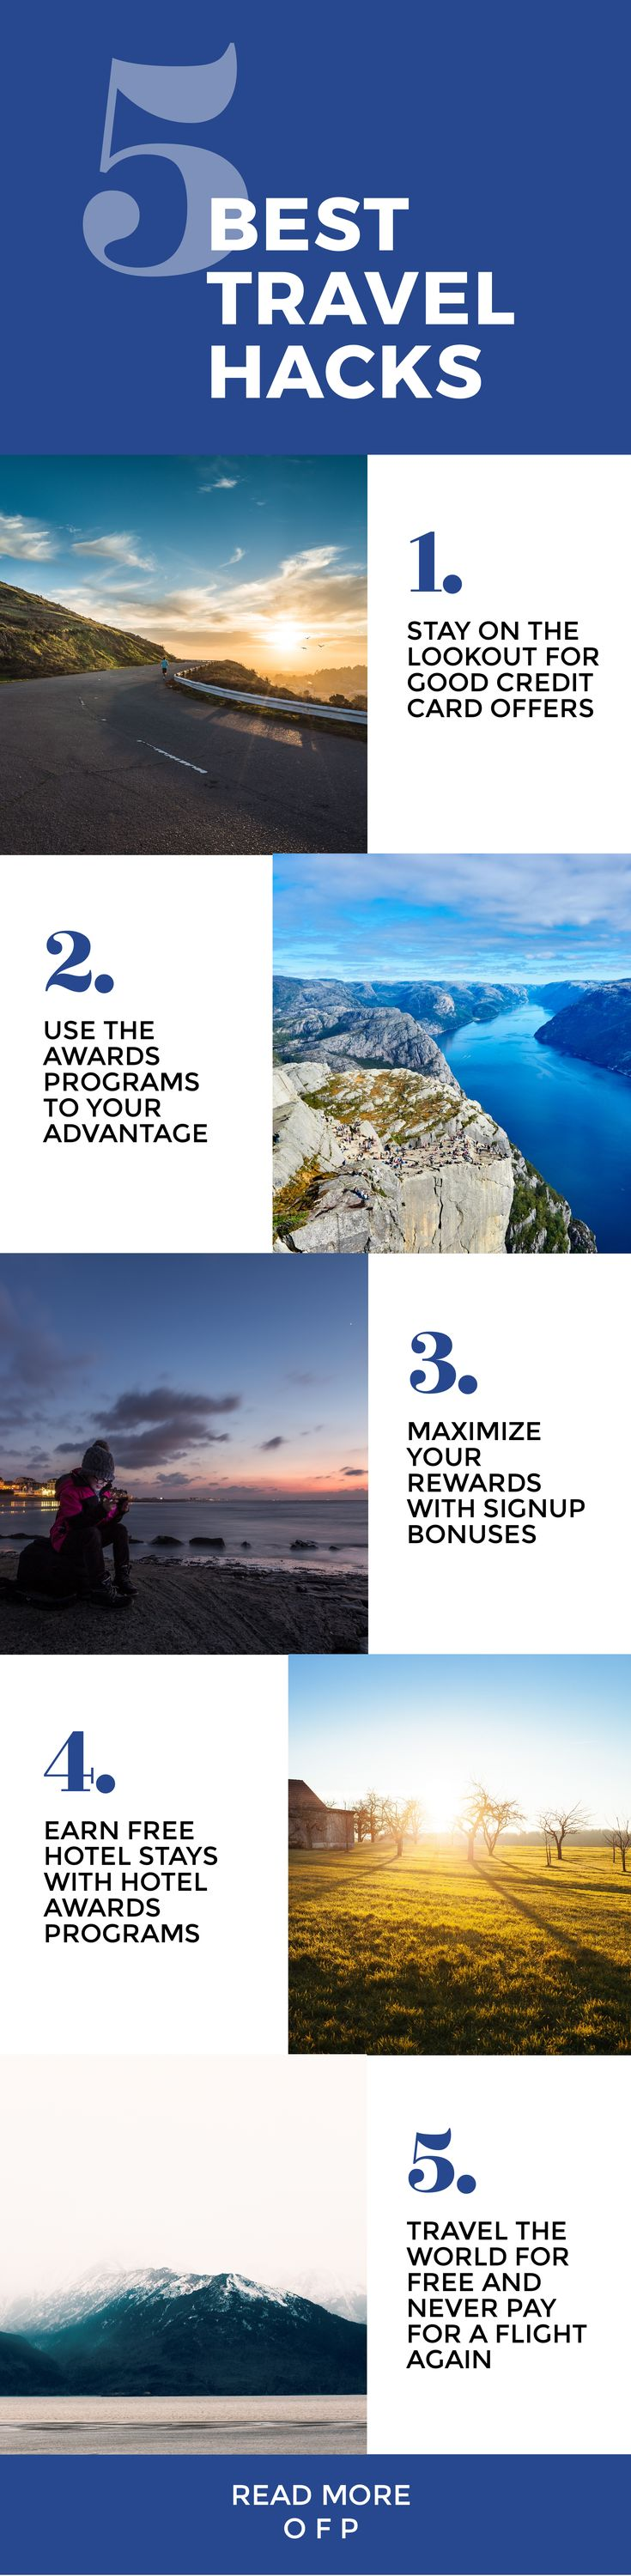 We travel the world for (almost) nothing now and you can do exactly the same. With #Travel #Hacks you can use #Rewards to get free flights and hotel stays like we do...